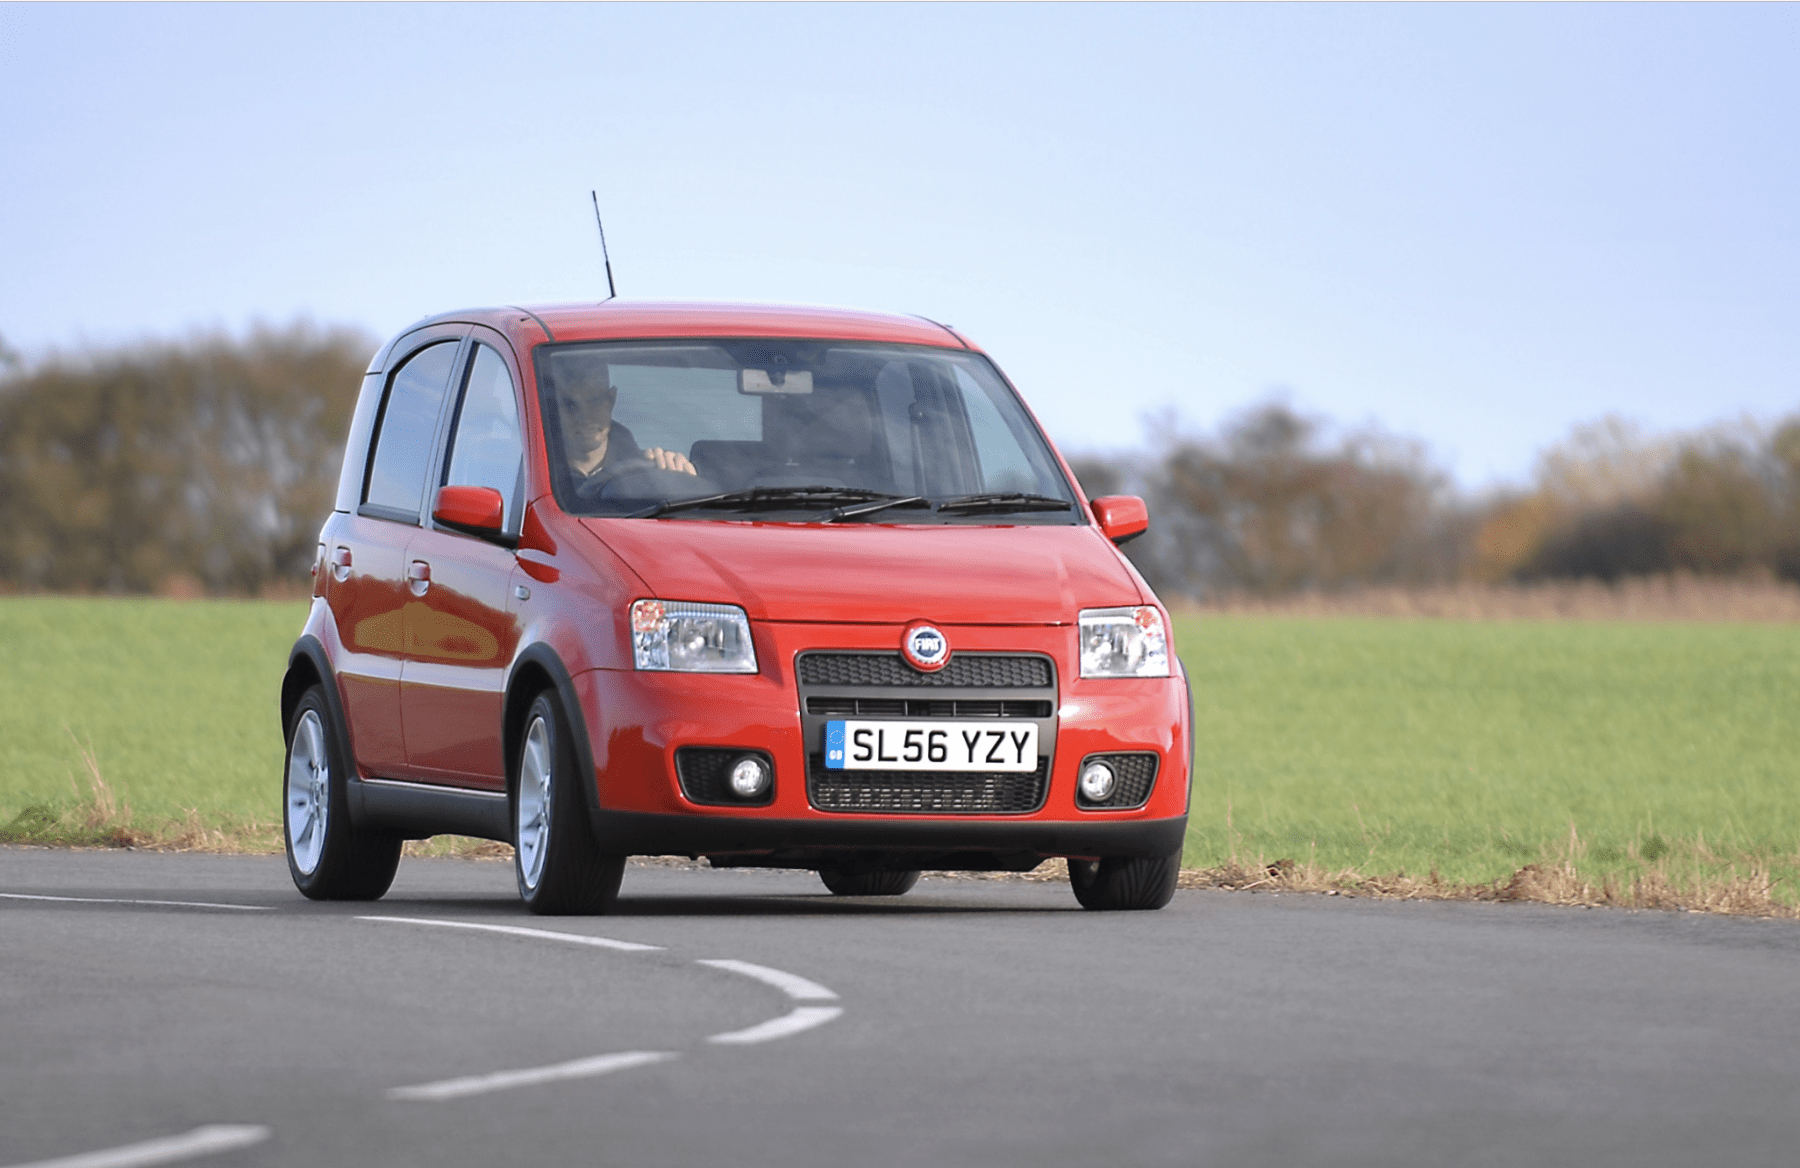 Front view of a Red Fiat Panda